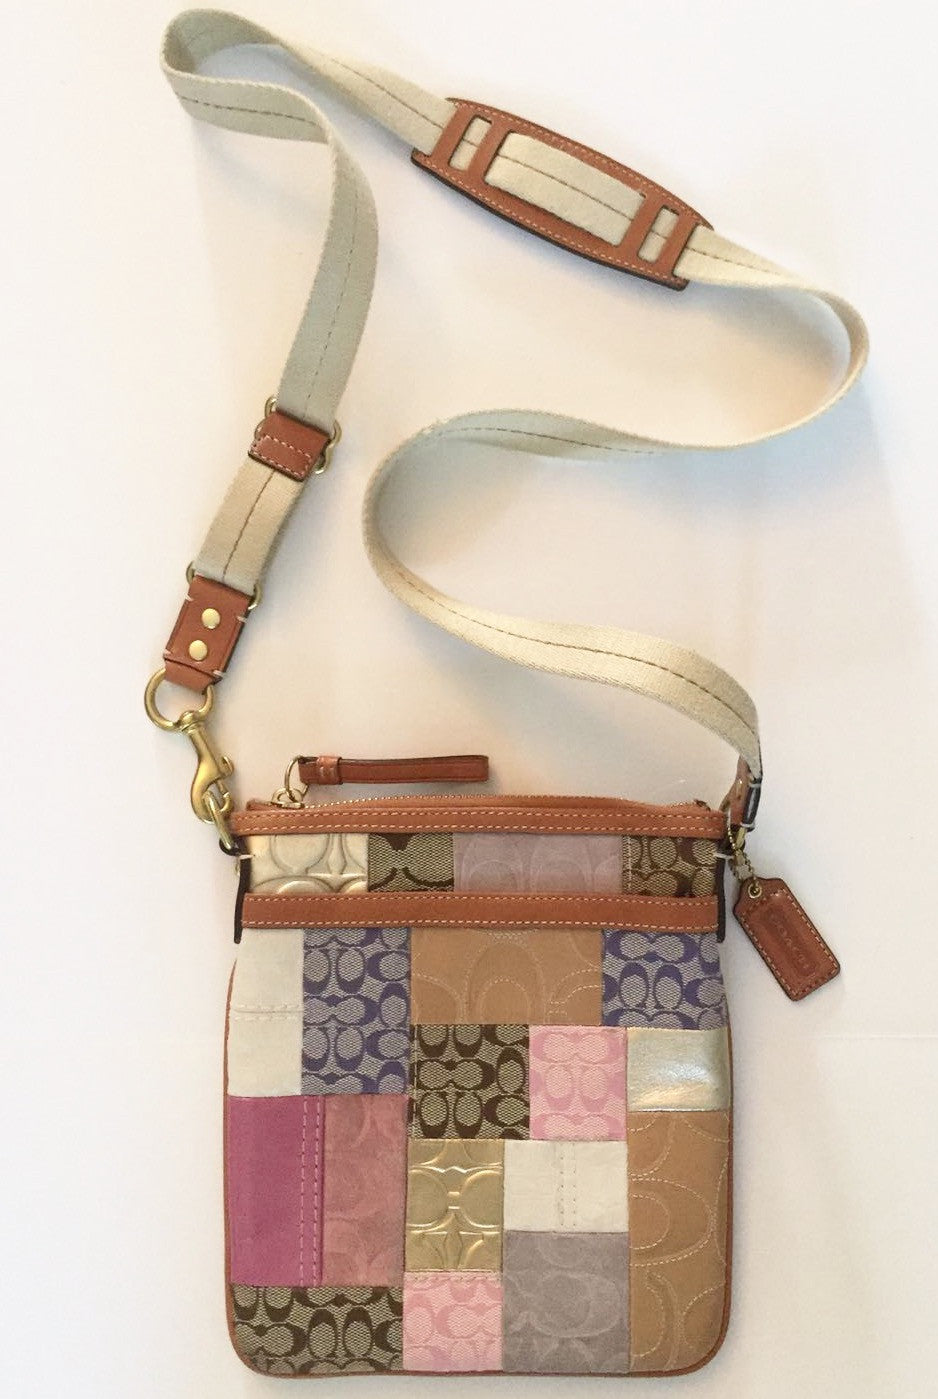 Coach Small Multi-Color Leather & Canvas Patchwork Cross-Body Bag